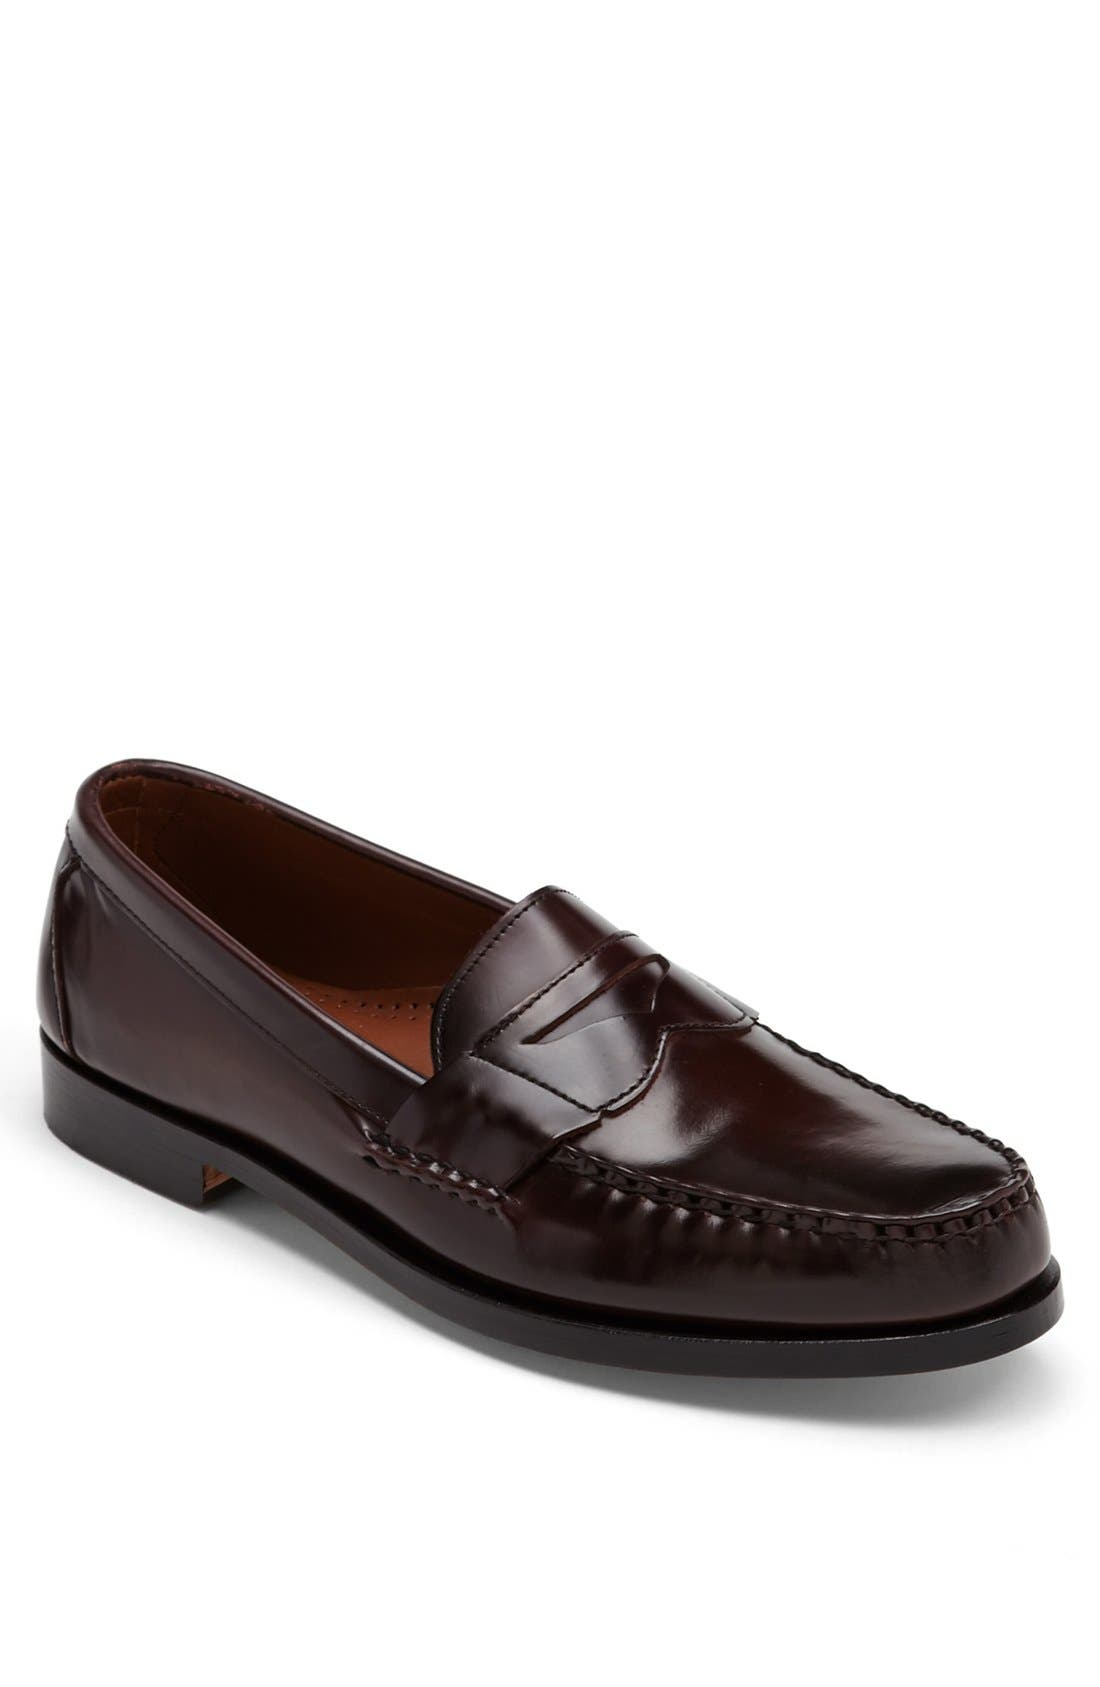 Main Image - Allen Edmonds 'Walden' Loafer (Men)